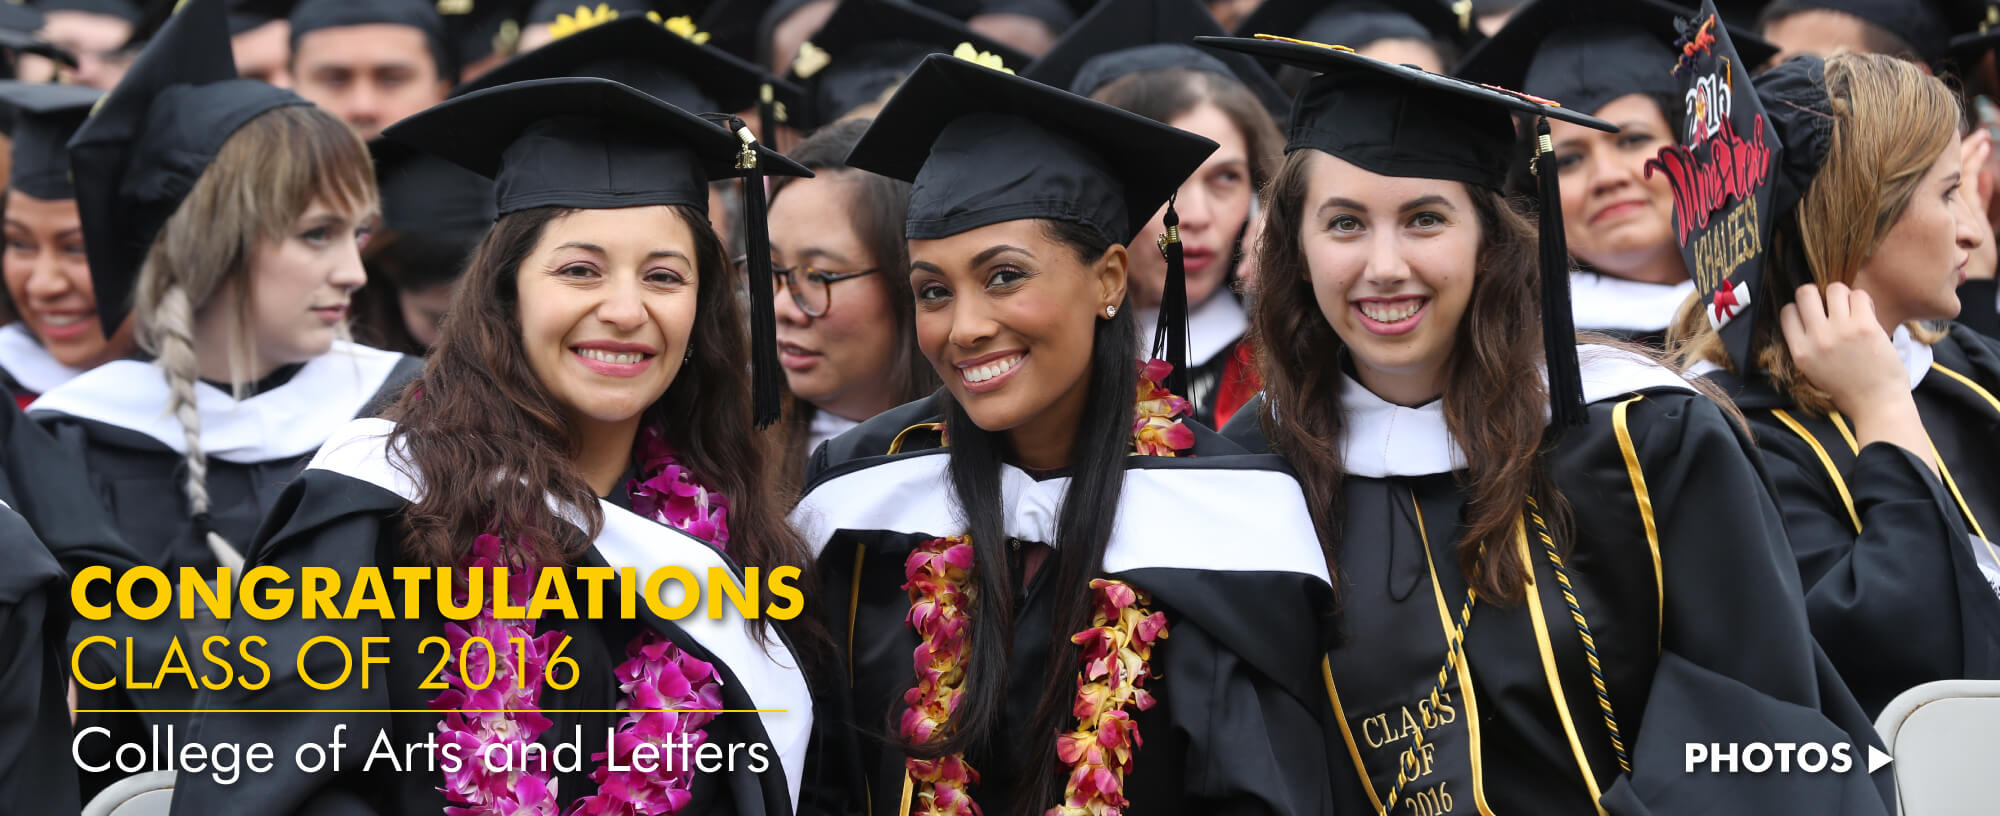 Congratulations Class of 2016: College of Arts and Letters